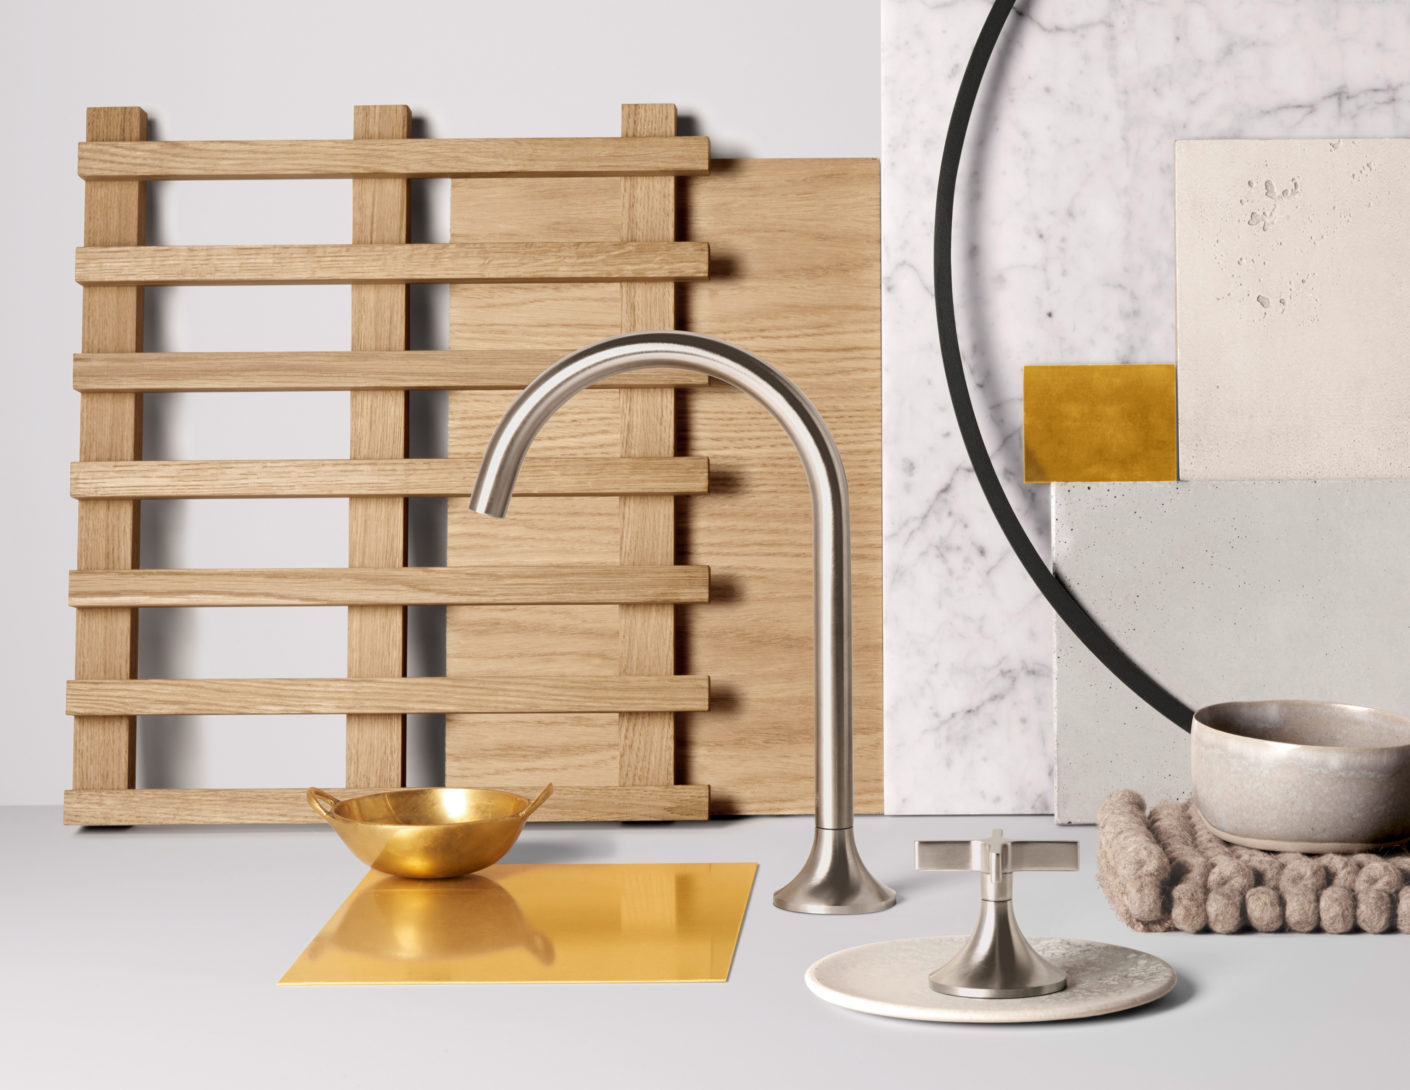 In the Moodboard by Neri & Hu, the transitory character is reflected in the interplay of the materials - gold meets wood, noble marble on raw concrete.